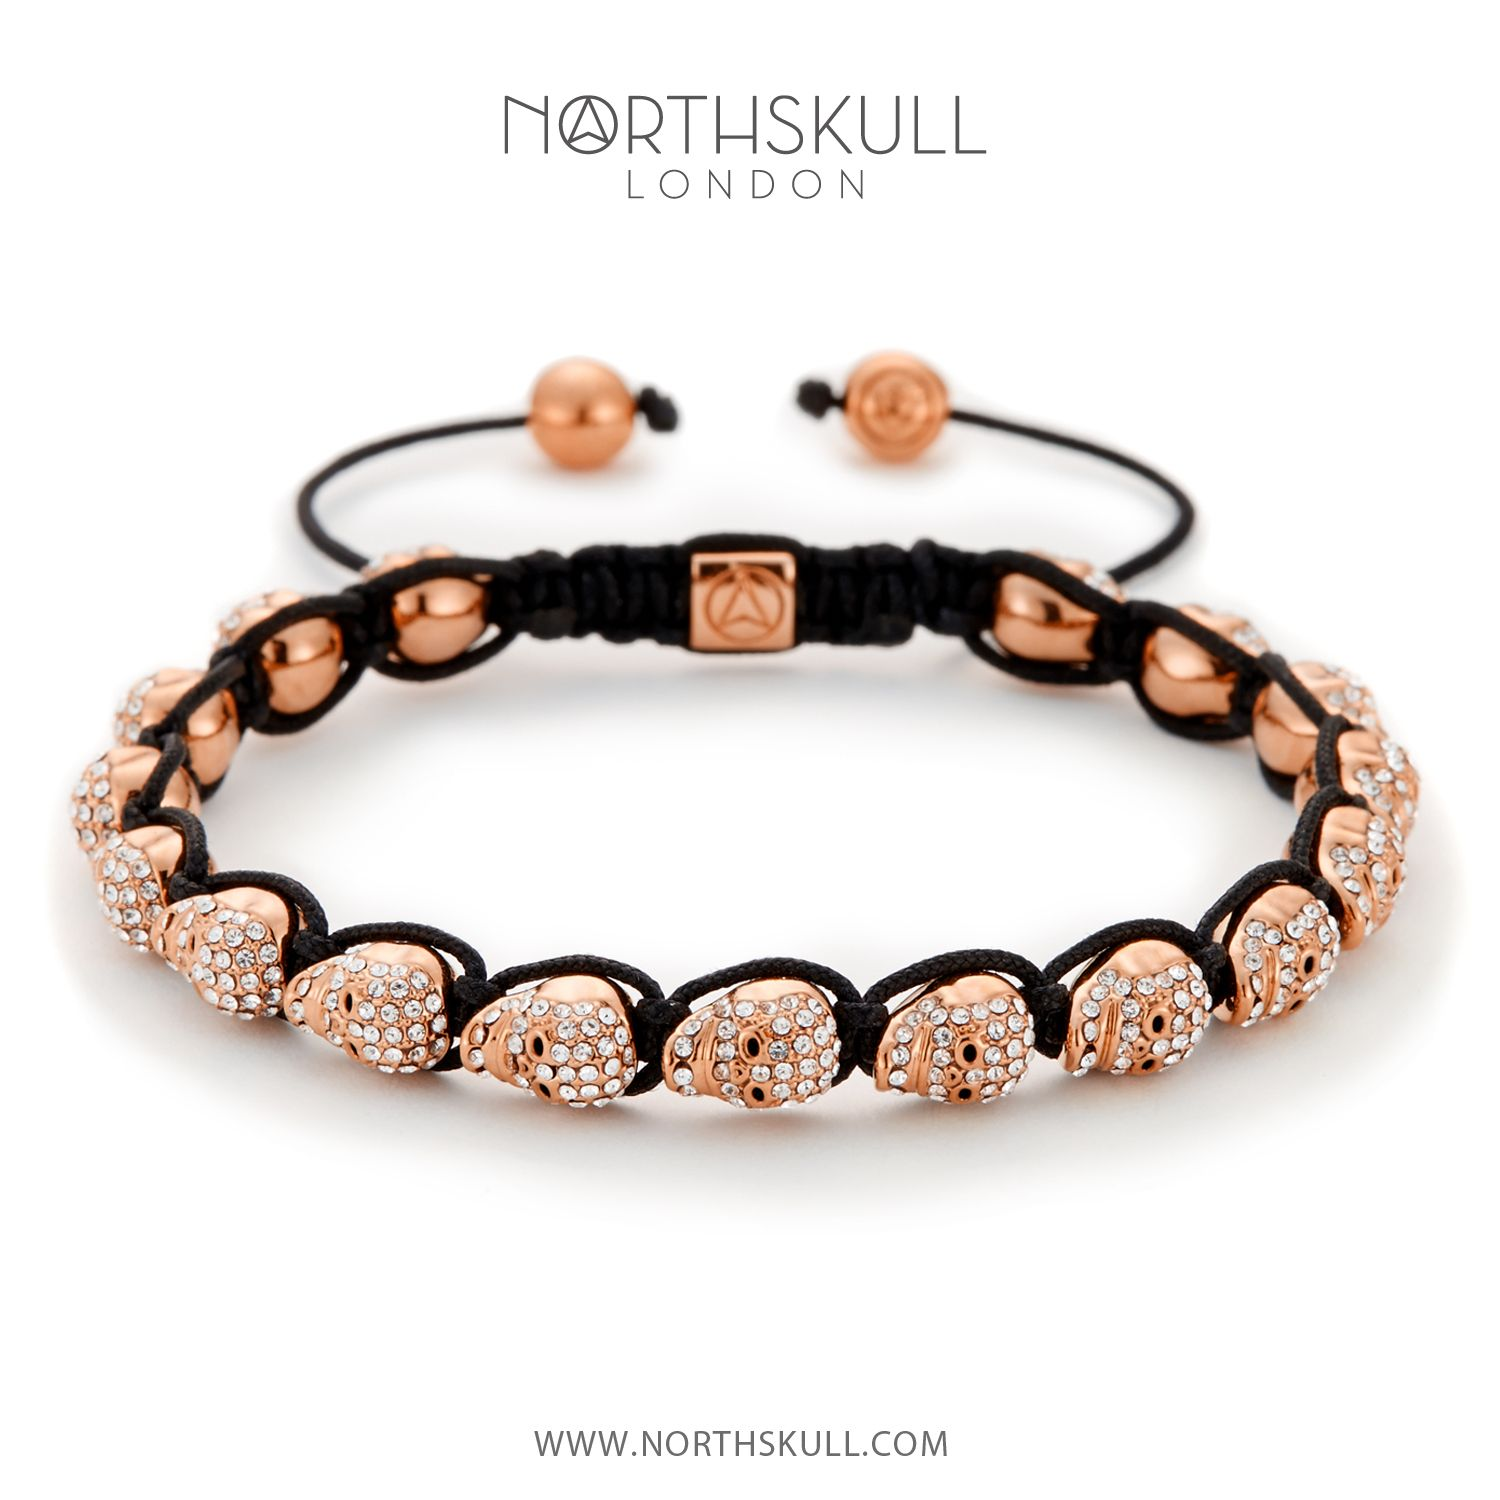 Our NEW Rose Gold & Clear Swarovski Crystal Micro Skull Bracelet is a stand out yet understated piece. Hand carved to an extremely high level of detail and set with precision cut clear Swarovski crystals, it's the ultimate accessory for modern looks   Available now at Northskull.com [Worldwide Shipping] #Luxury #Jewelry #MensFashion